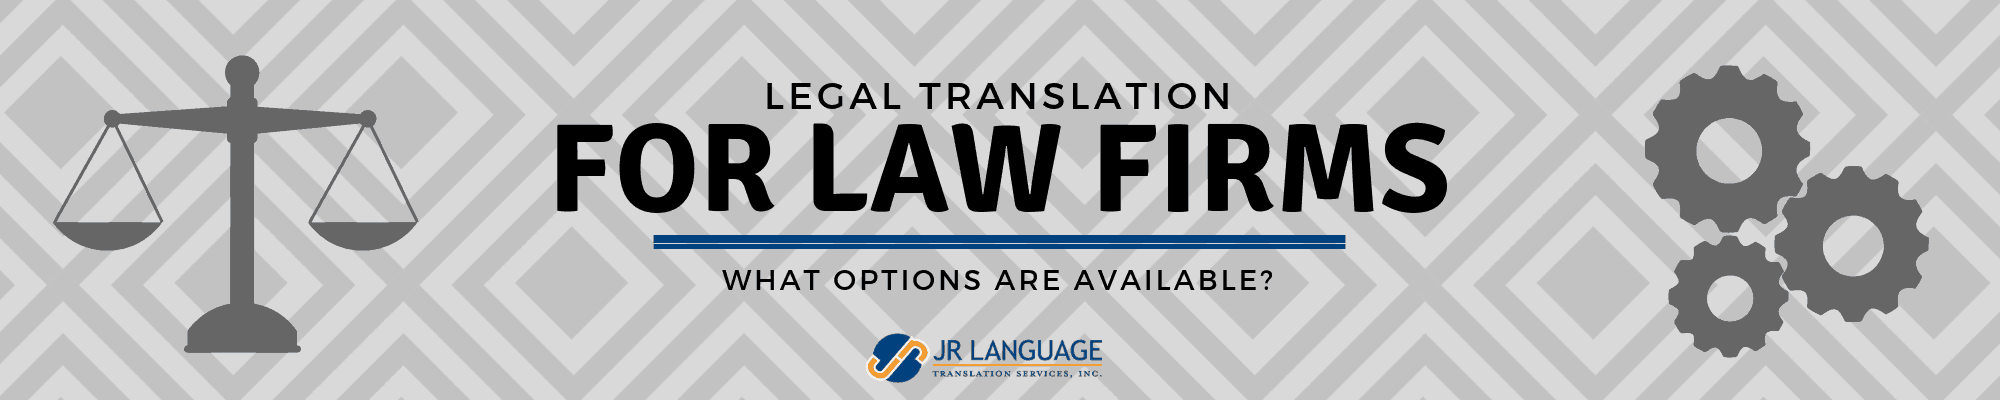 Legal Translation for Law firms